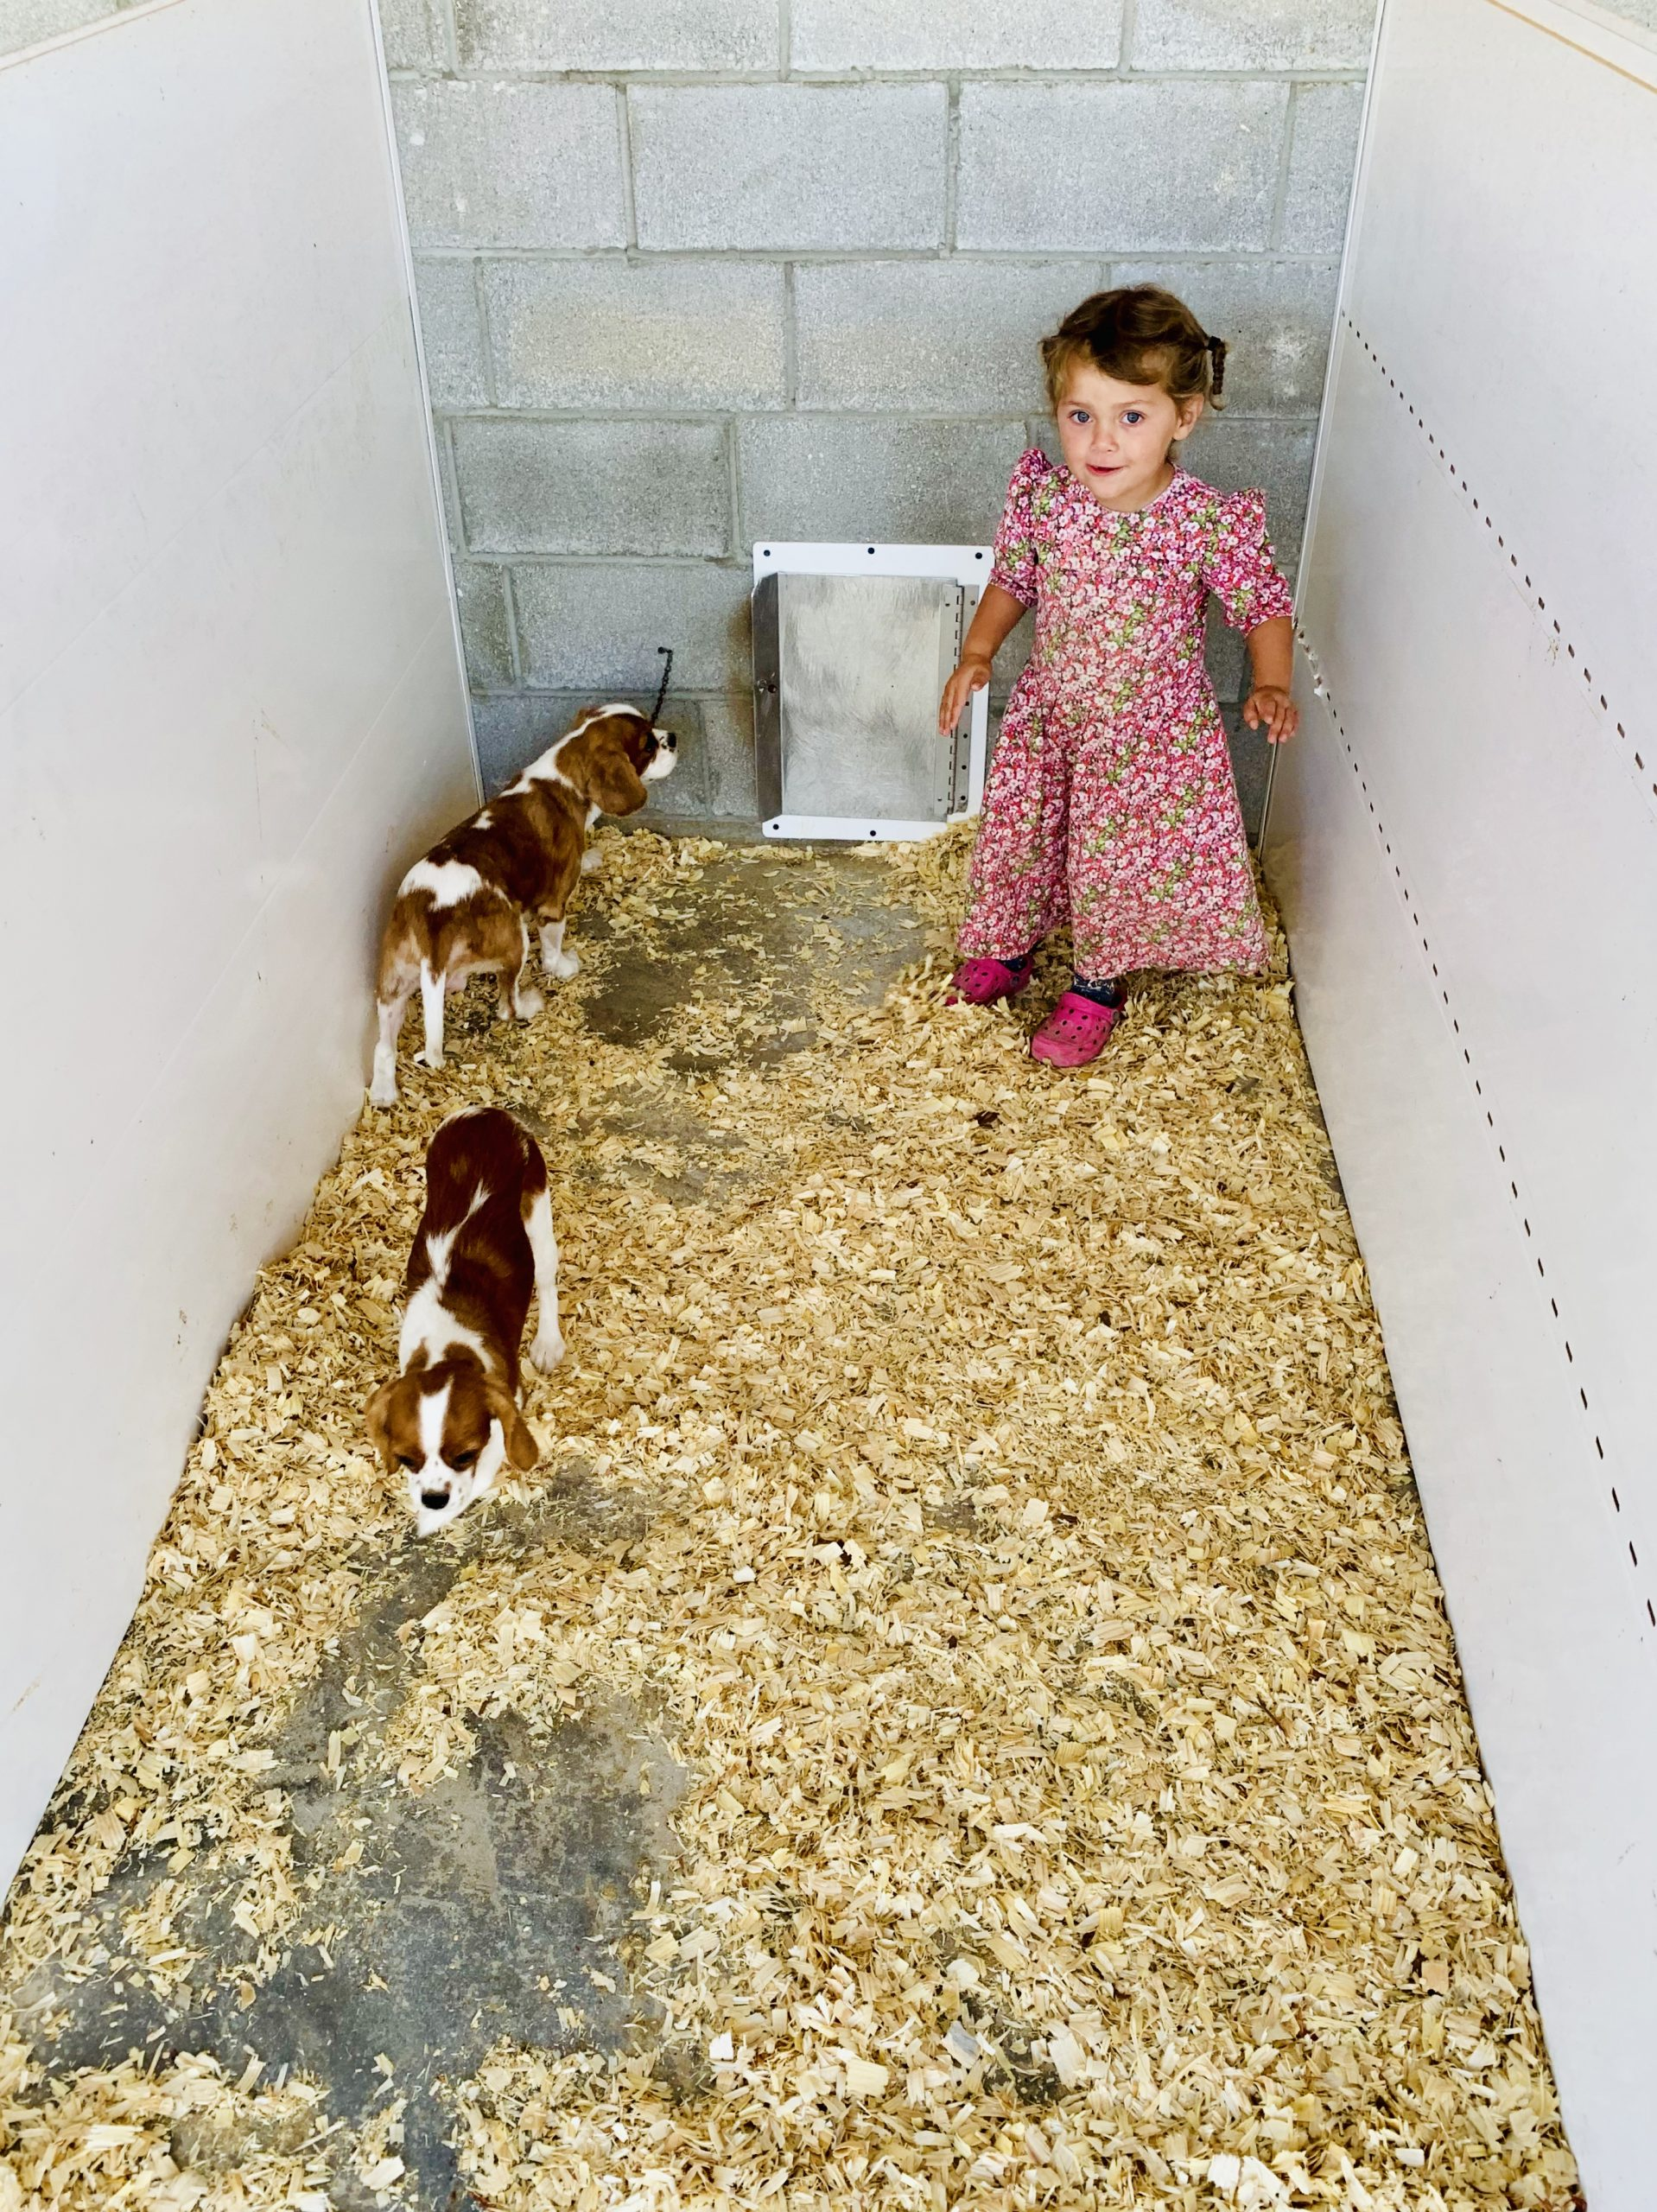 Glen's daughter playing with the puppies